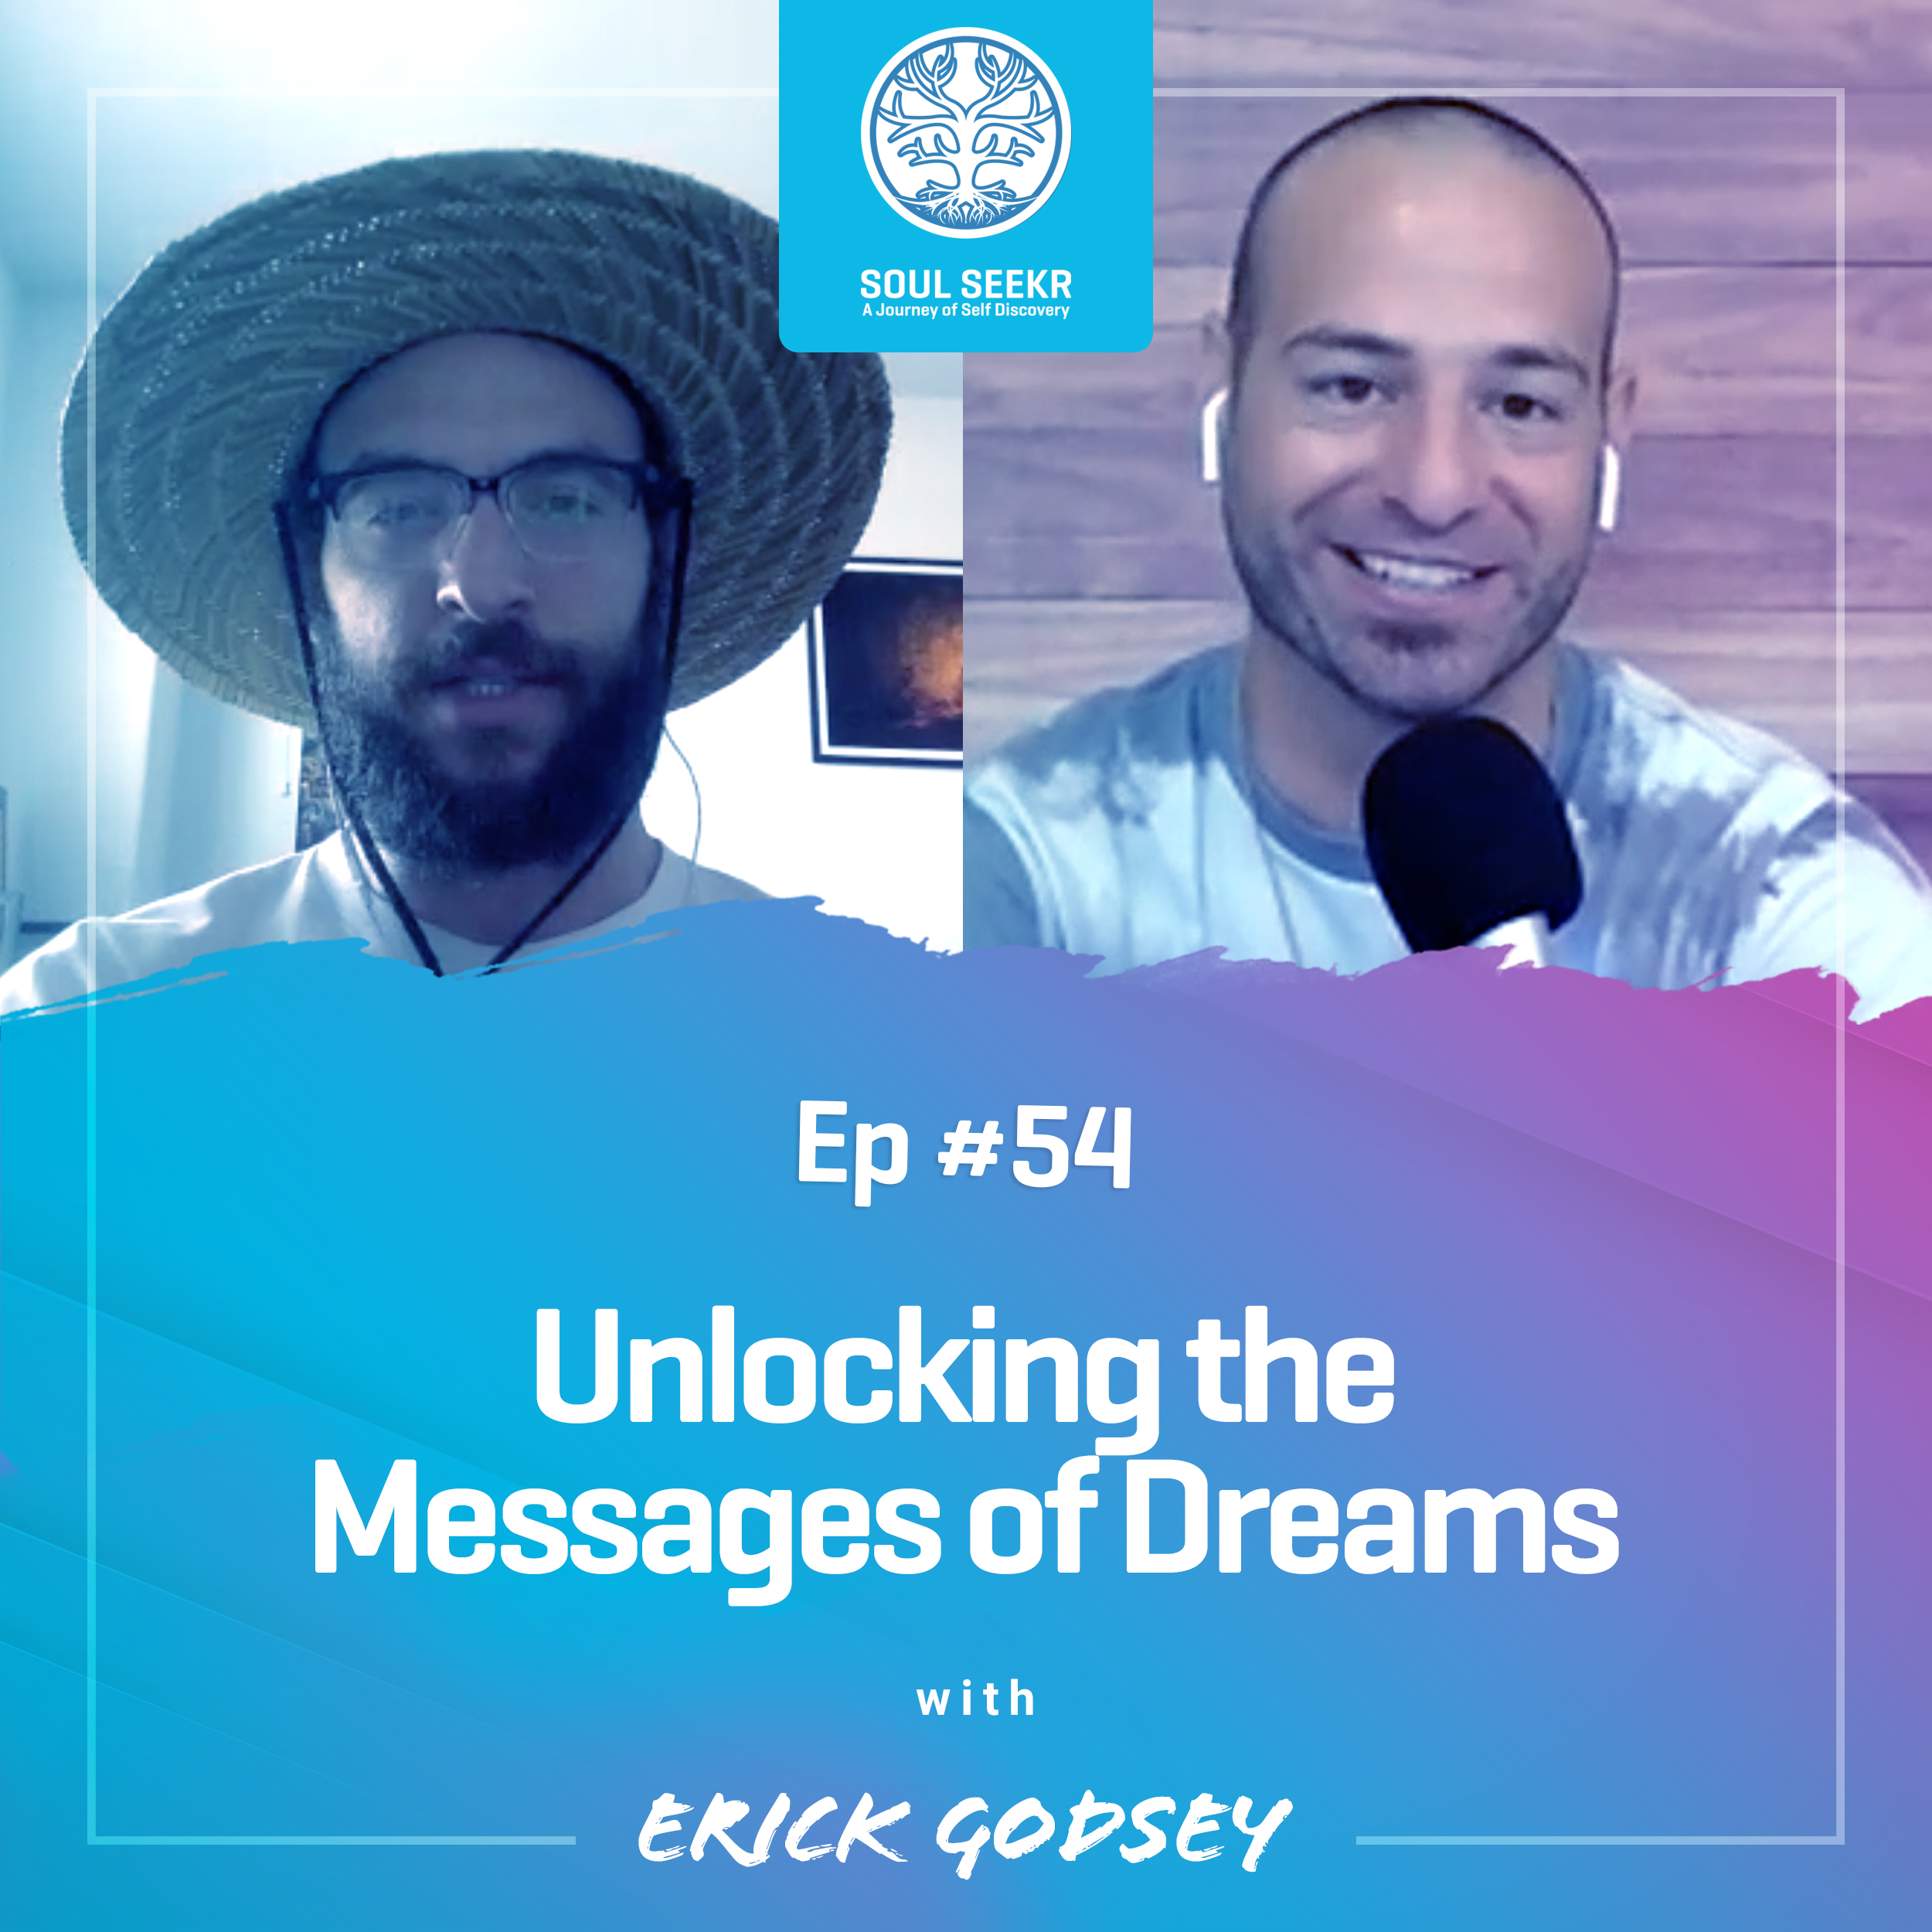 #54: Unlocking the Messages of Dreams with Erick Godsey